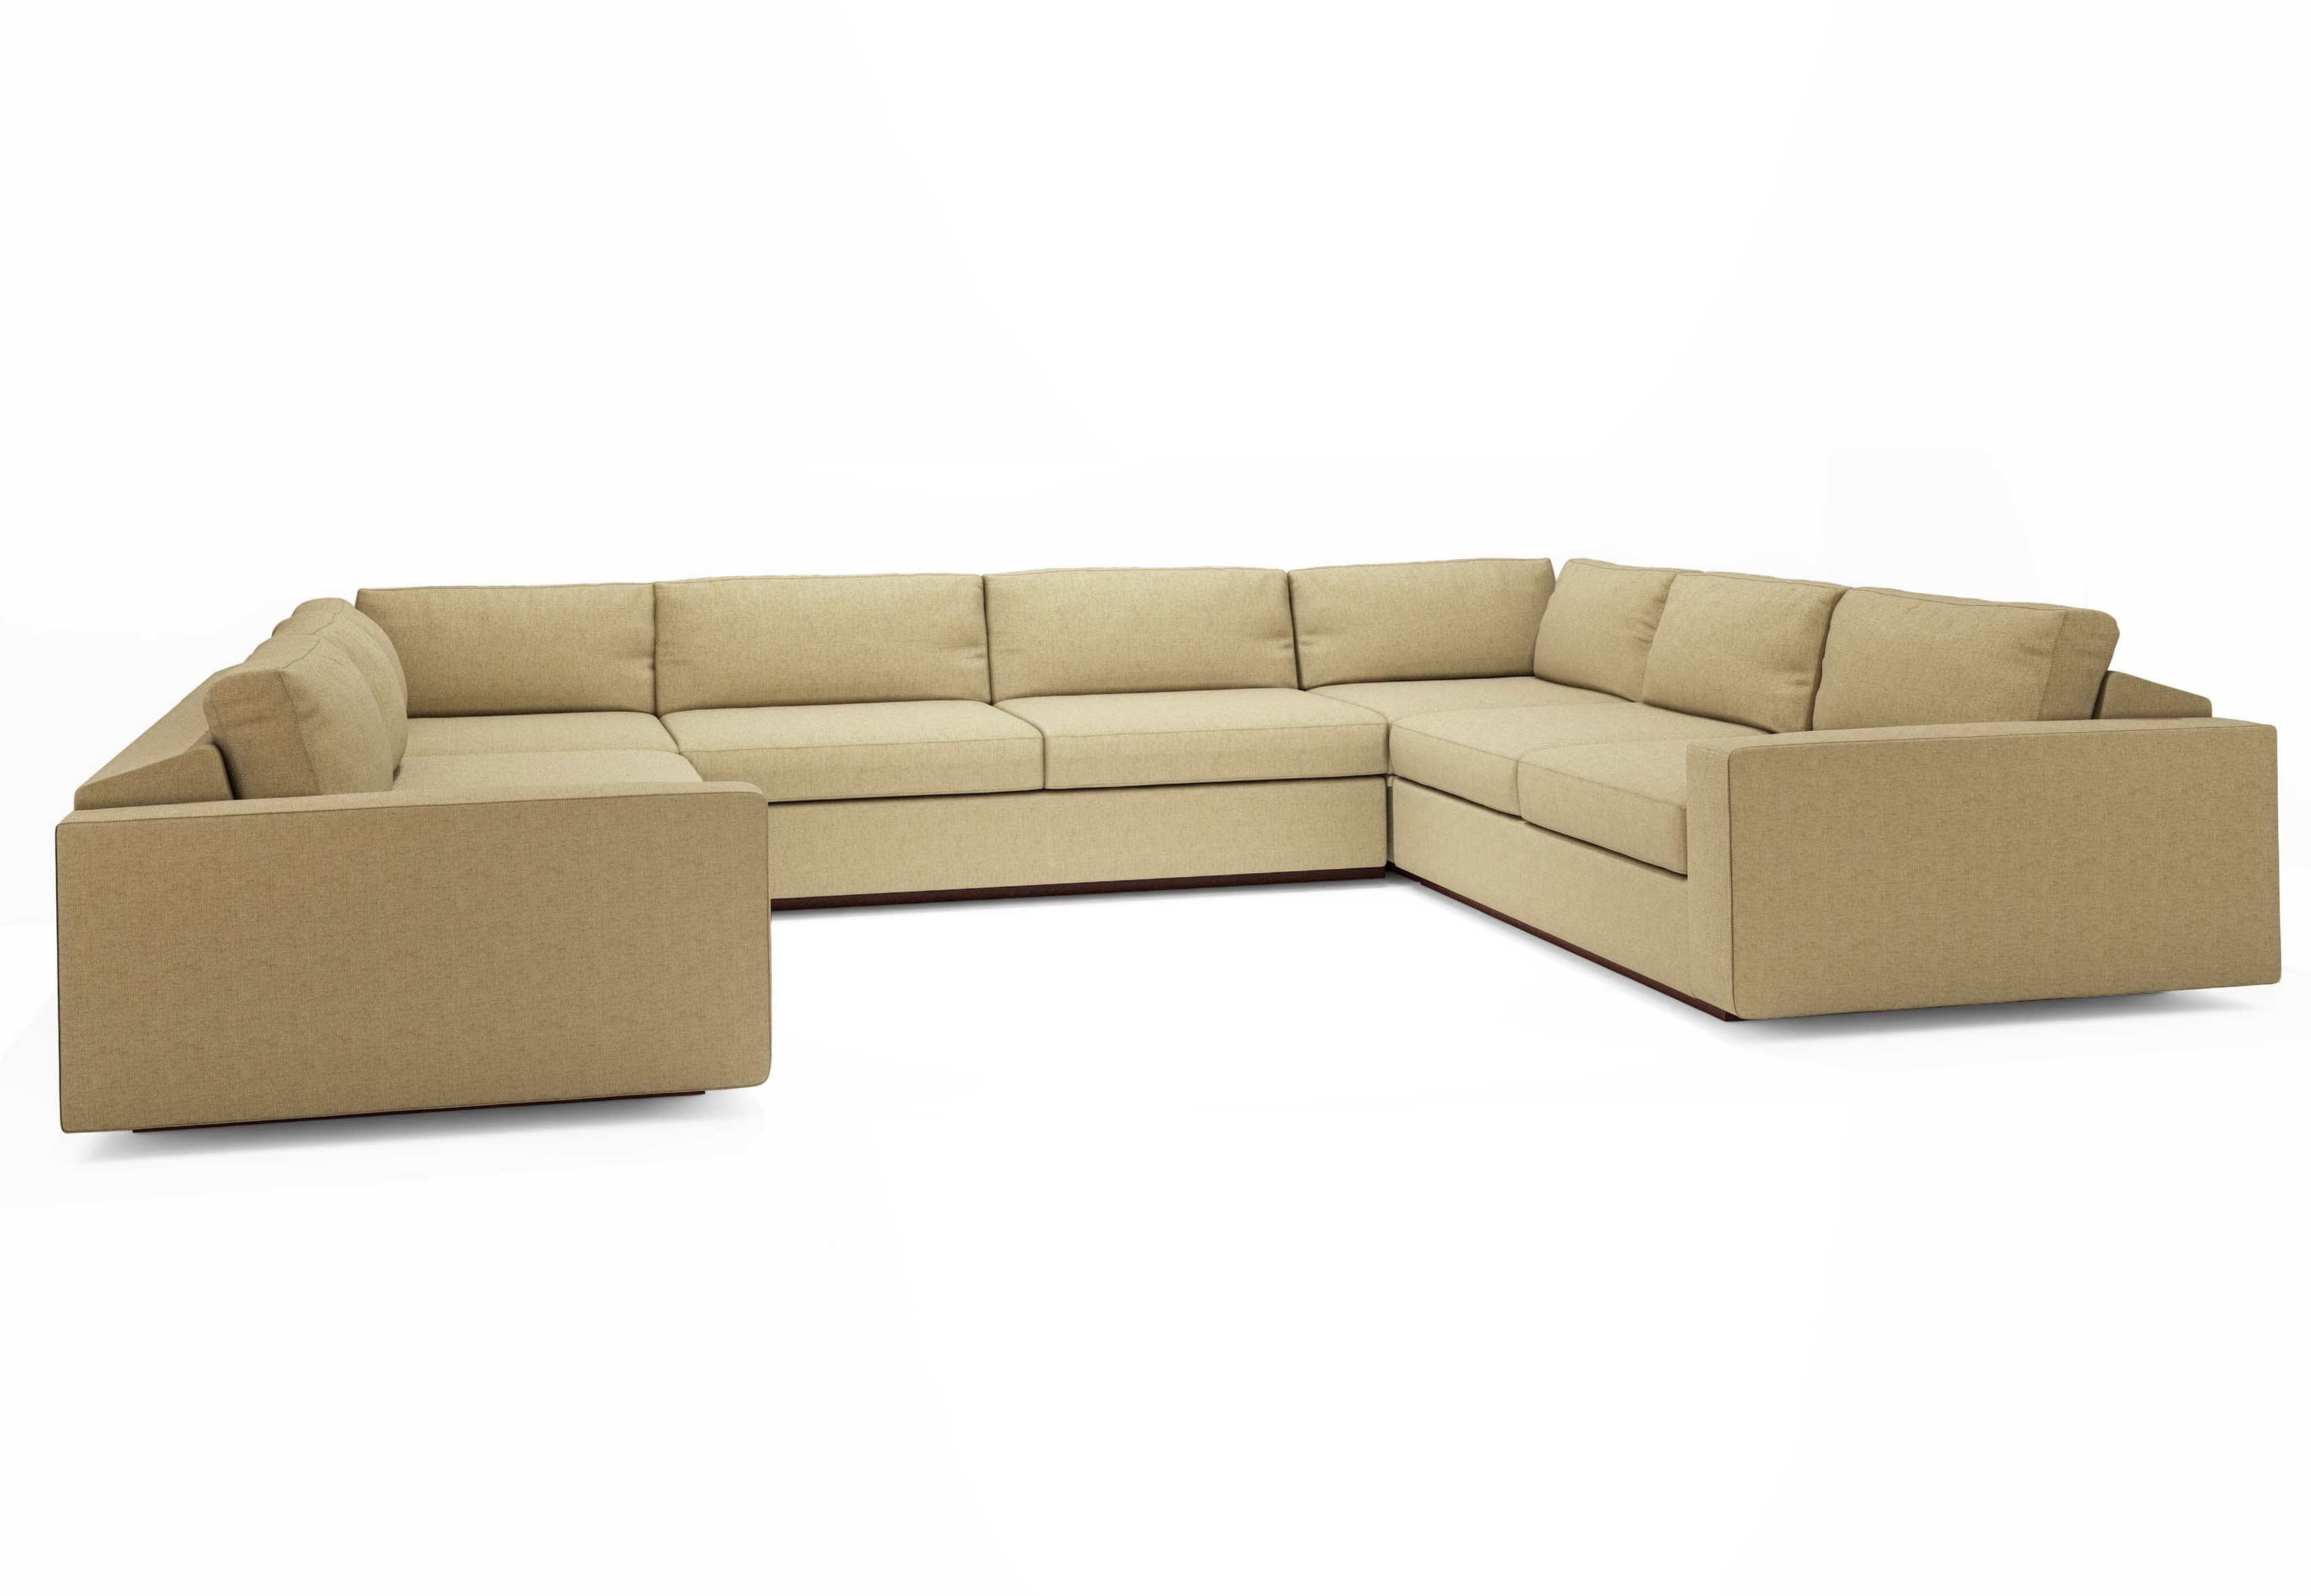 U Shaped Sectional Sofas With Chaise